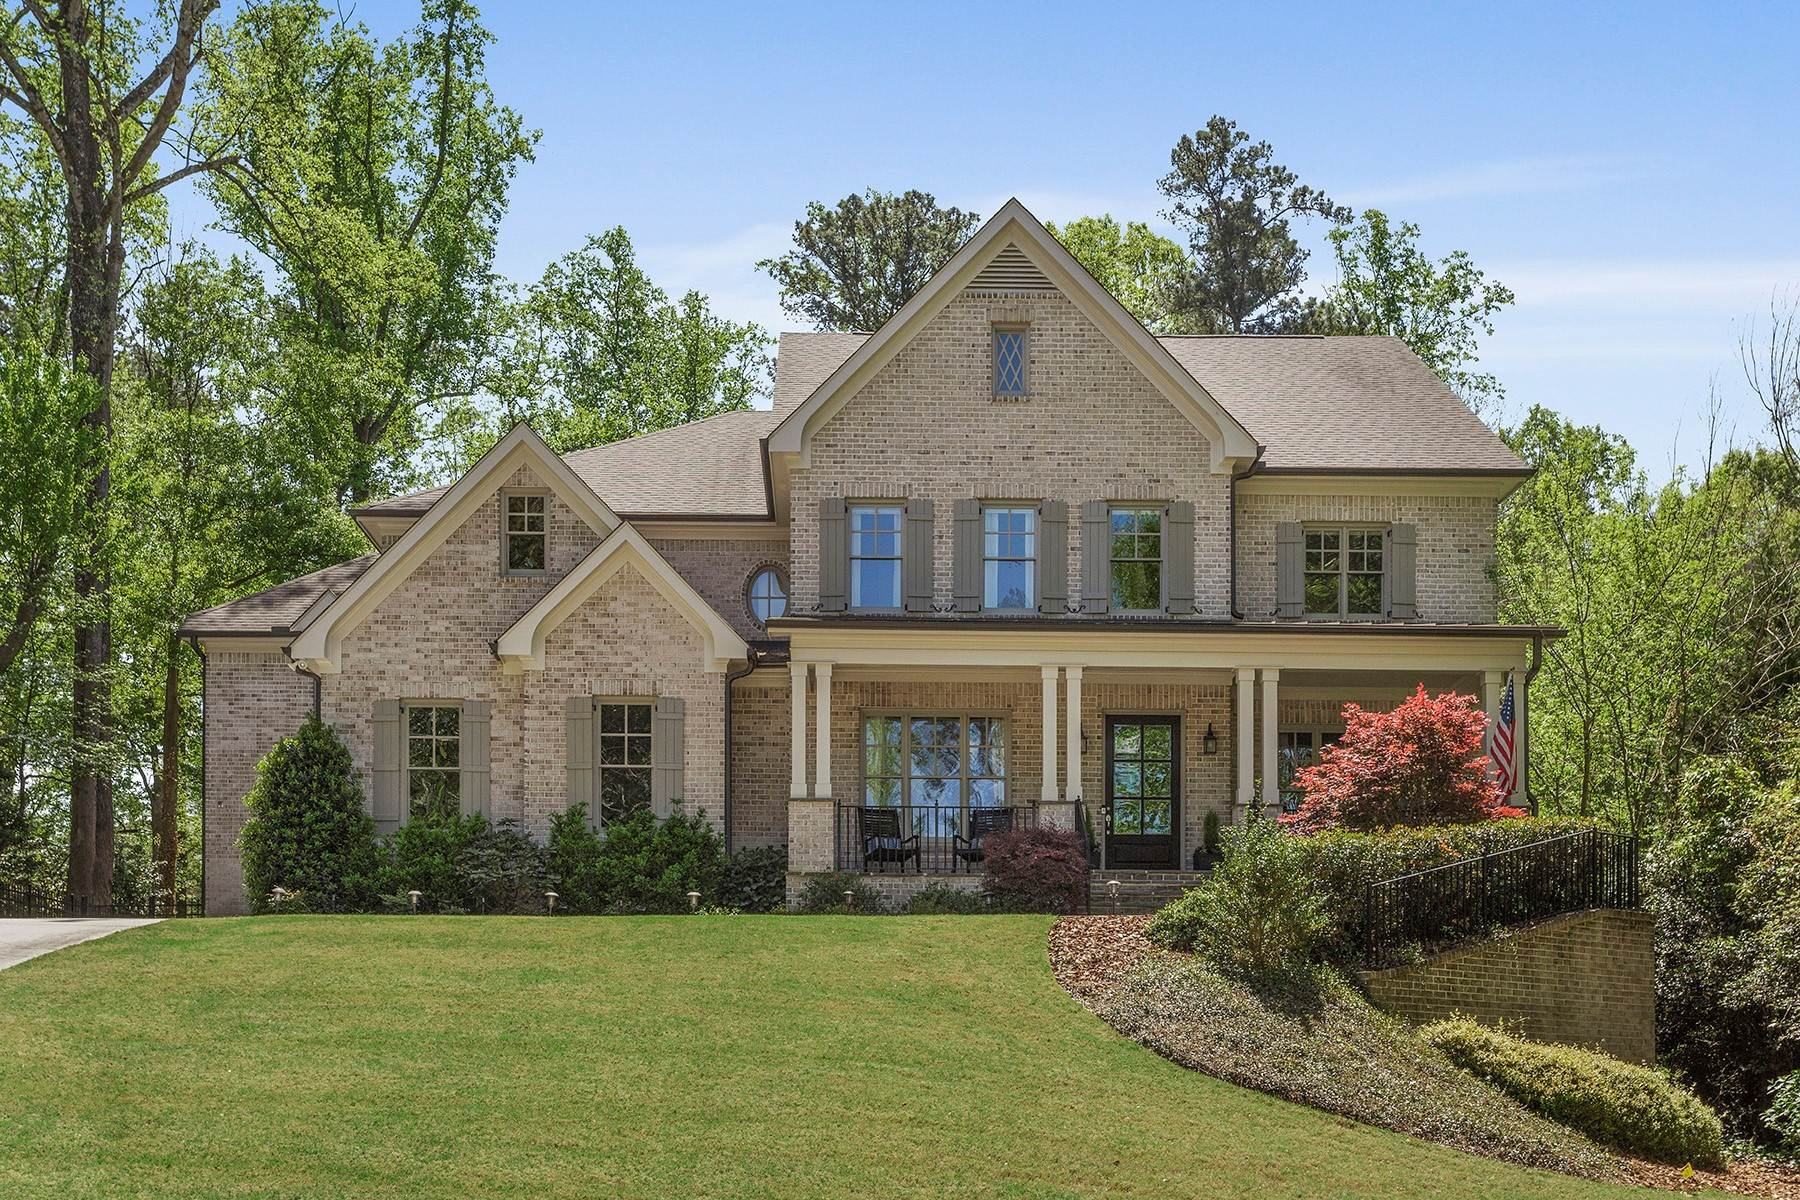 Single Family Homes for Sale at Exquisite Four-Sides Brick Hilltop Beauty Nestled On Over Half An Acre 369 Pinecrest Road NE Atlanta, Georgia 30342 United States